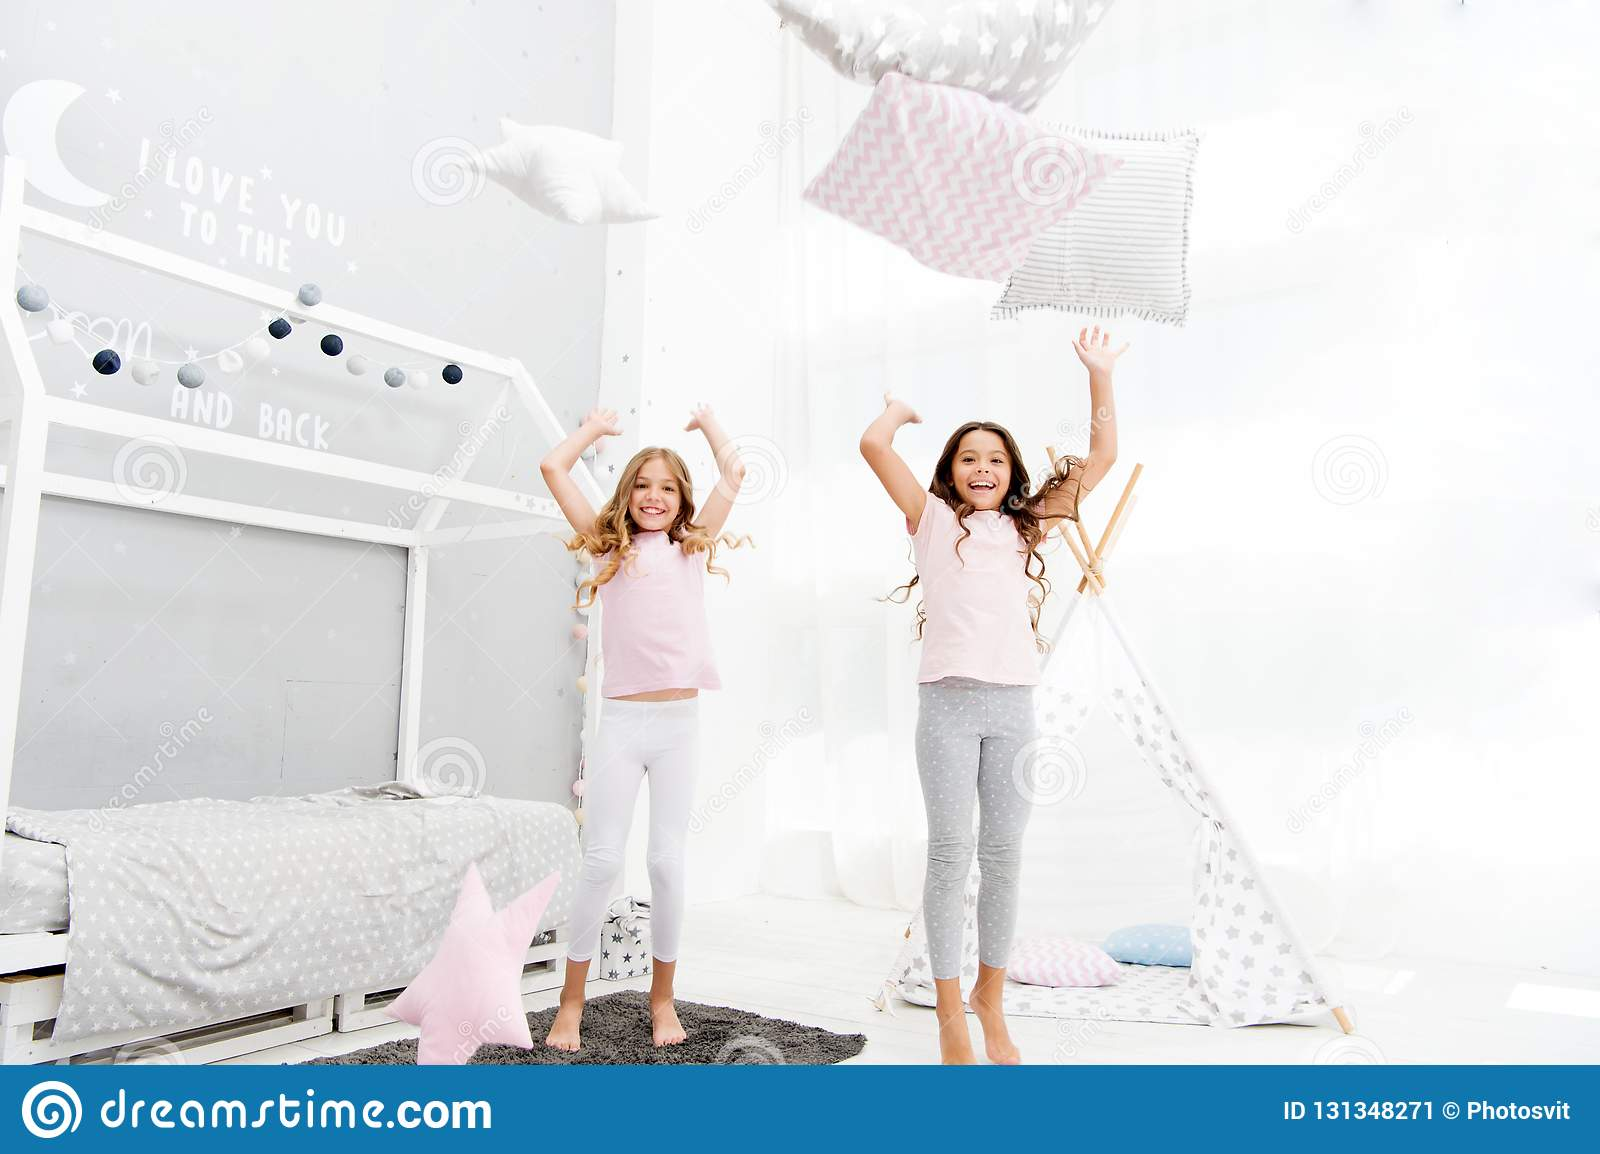 4341fa0086 Pillow fight pajama party. Evening time for fun. Sleepover party ideas. Girls  happy best friends or siblings in cute stylish pajamas with pillows  sleepover ...